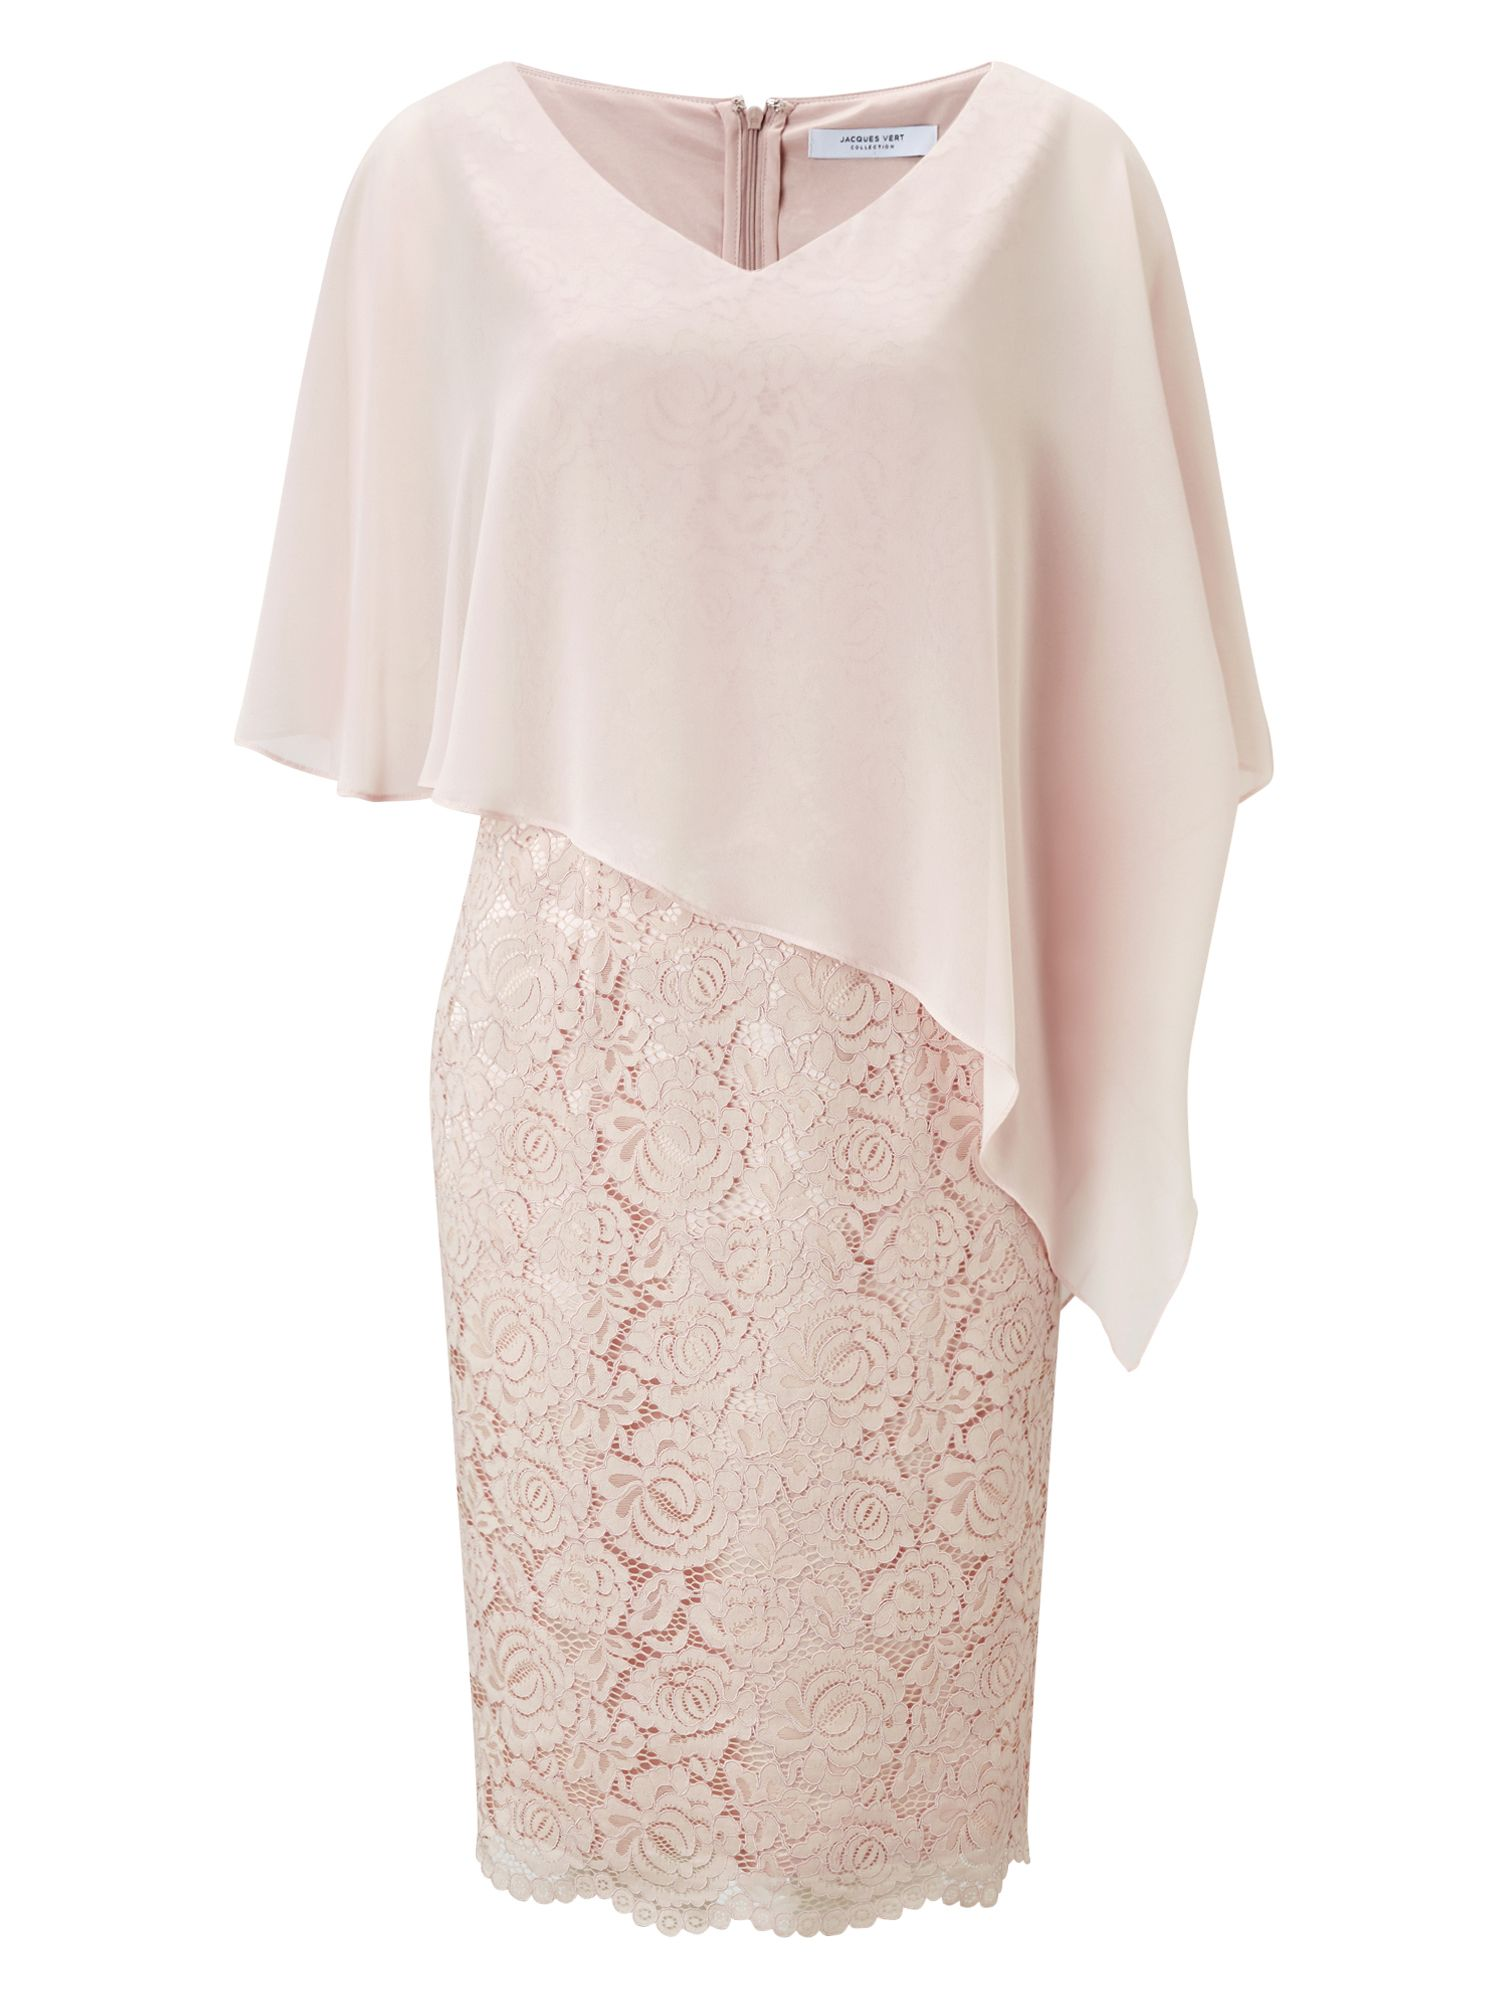 Jacques Vert Lace And Chiffon Dress, Neutral